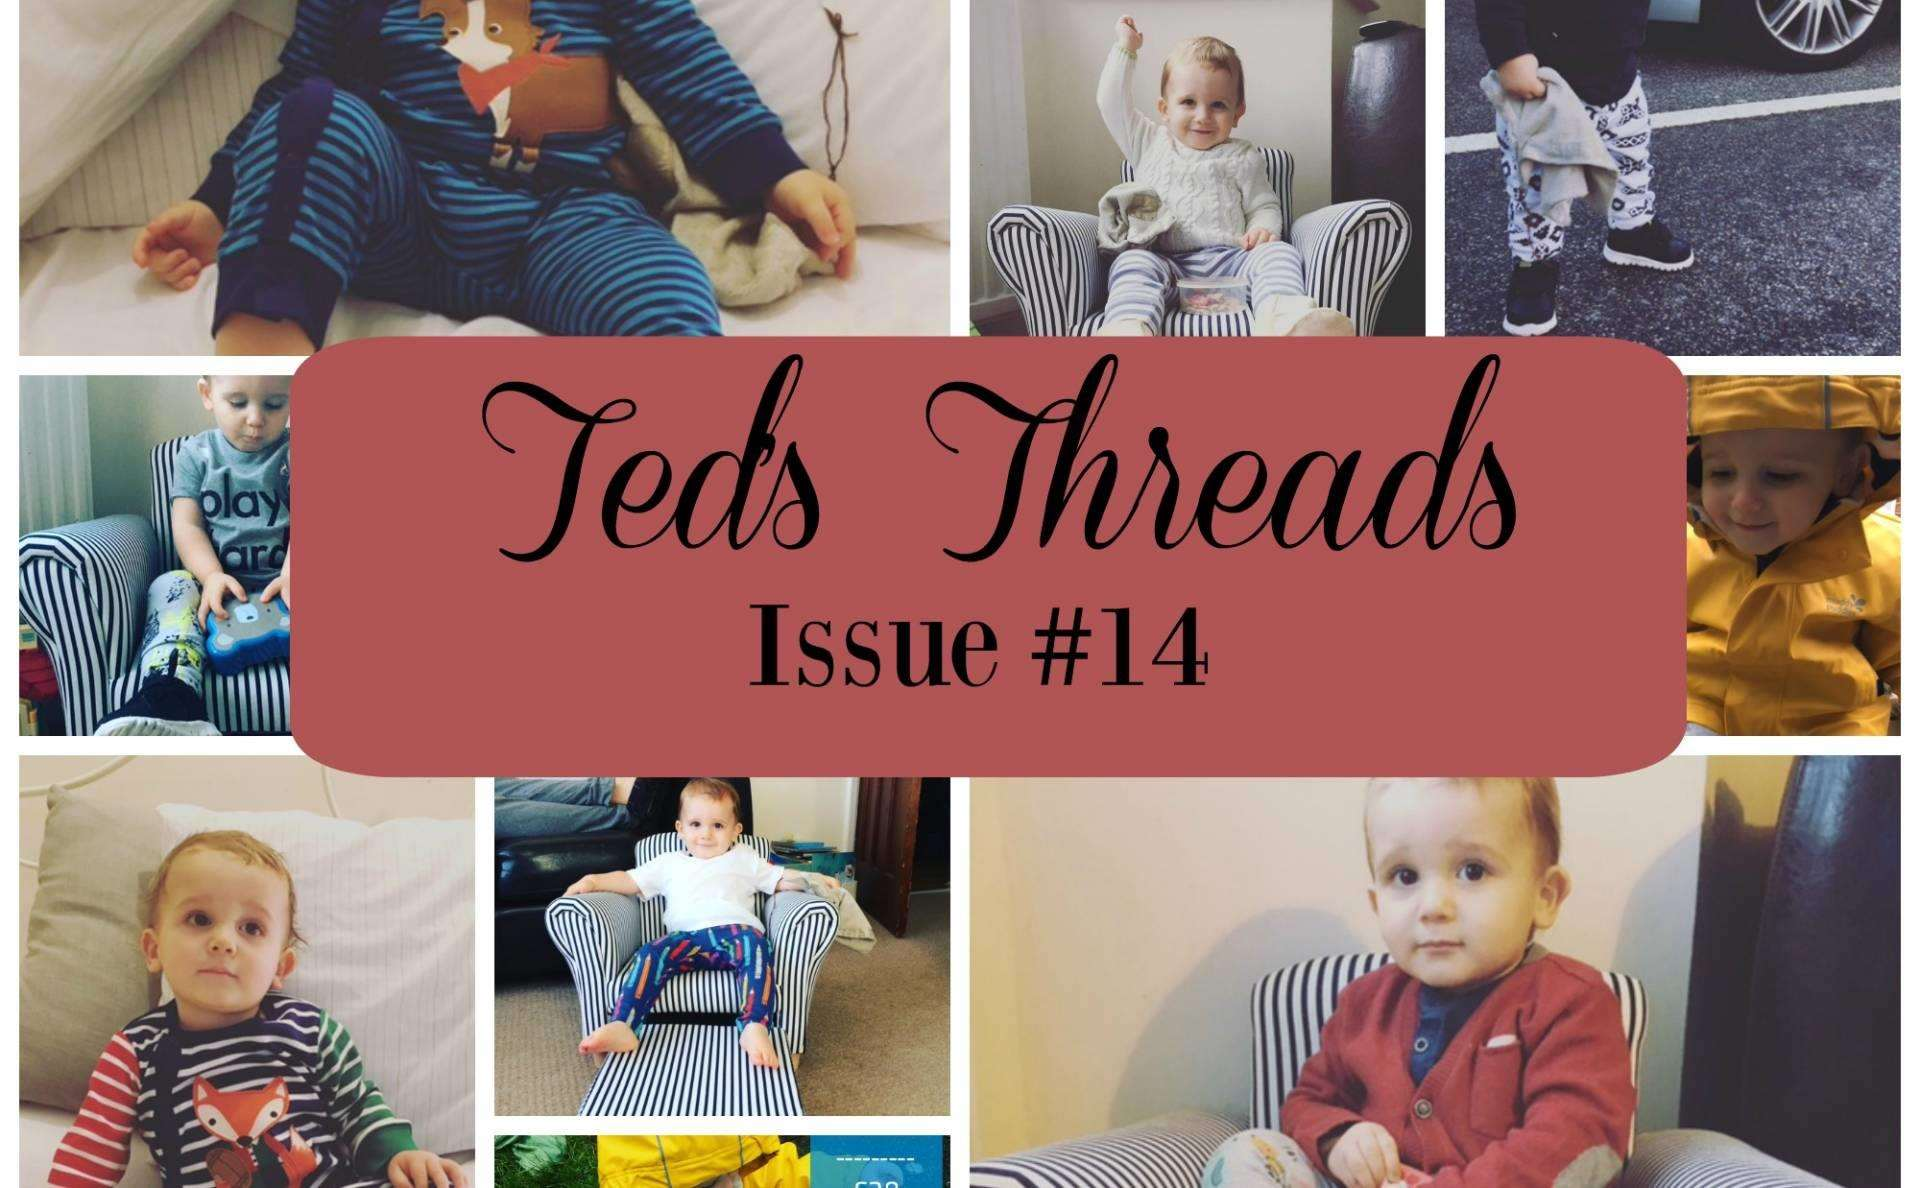 Teds Threads Issue #14, Teds threads 14%, uncategorised%